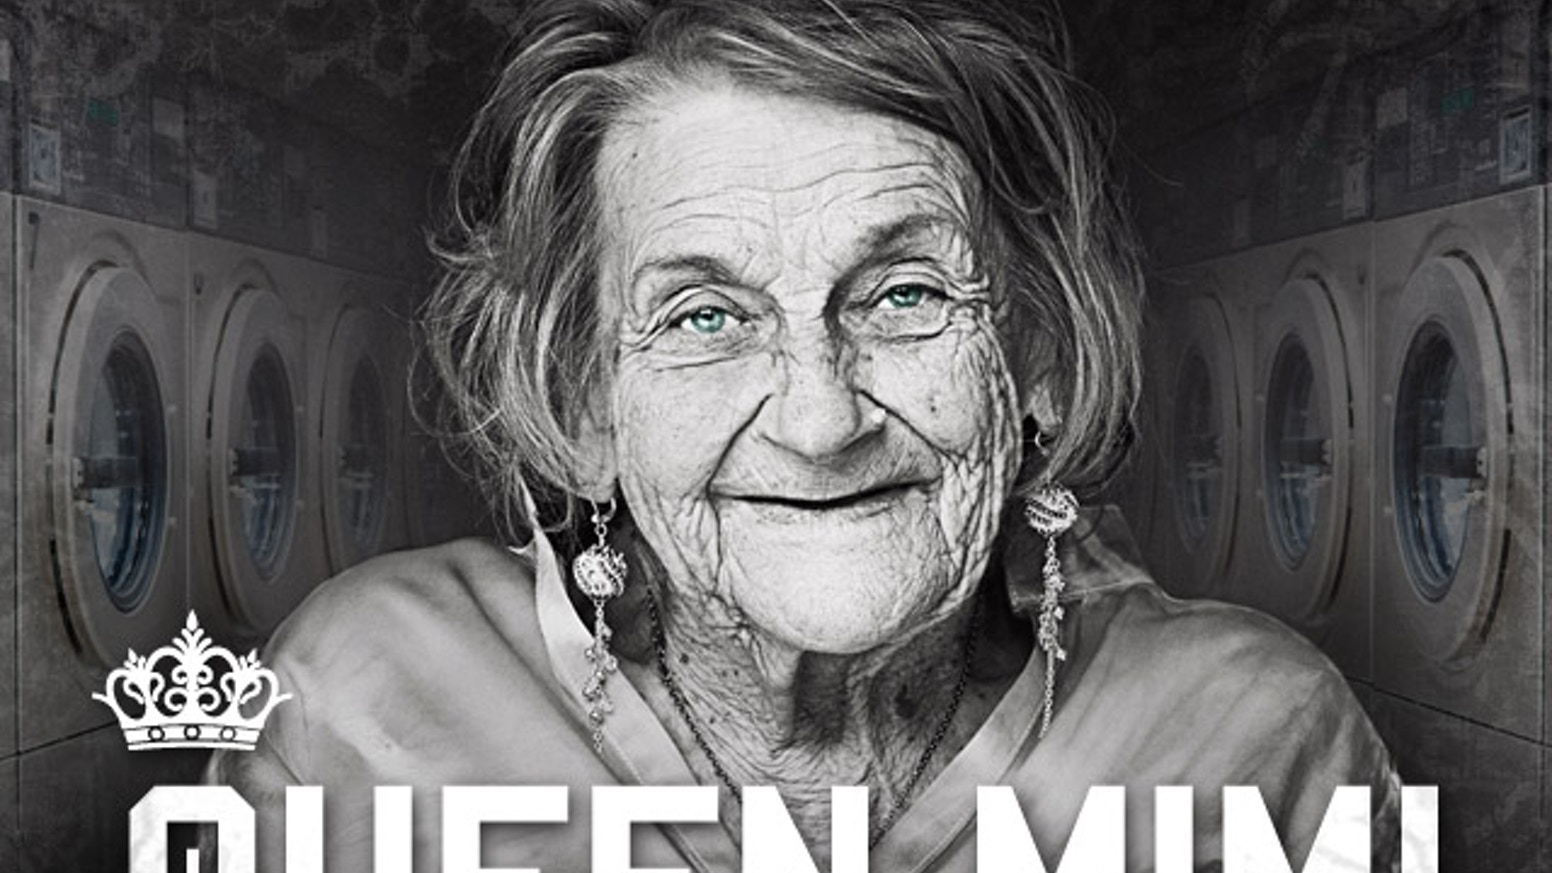 After 25 years of homelessness, 88-year-old Mimi gets her own apartment. A documentary featuring Mimi, Zach Galifianakis and friends.